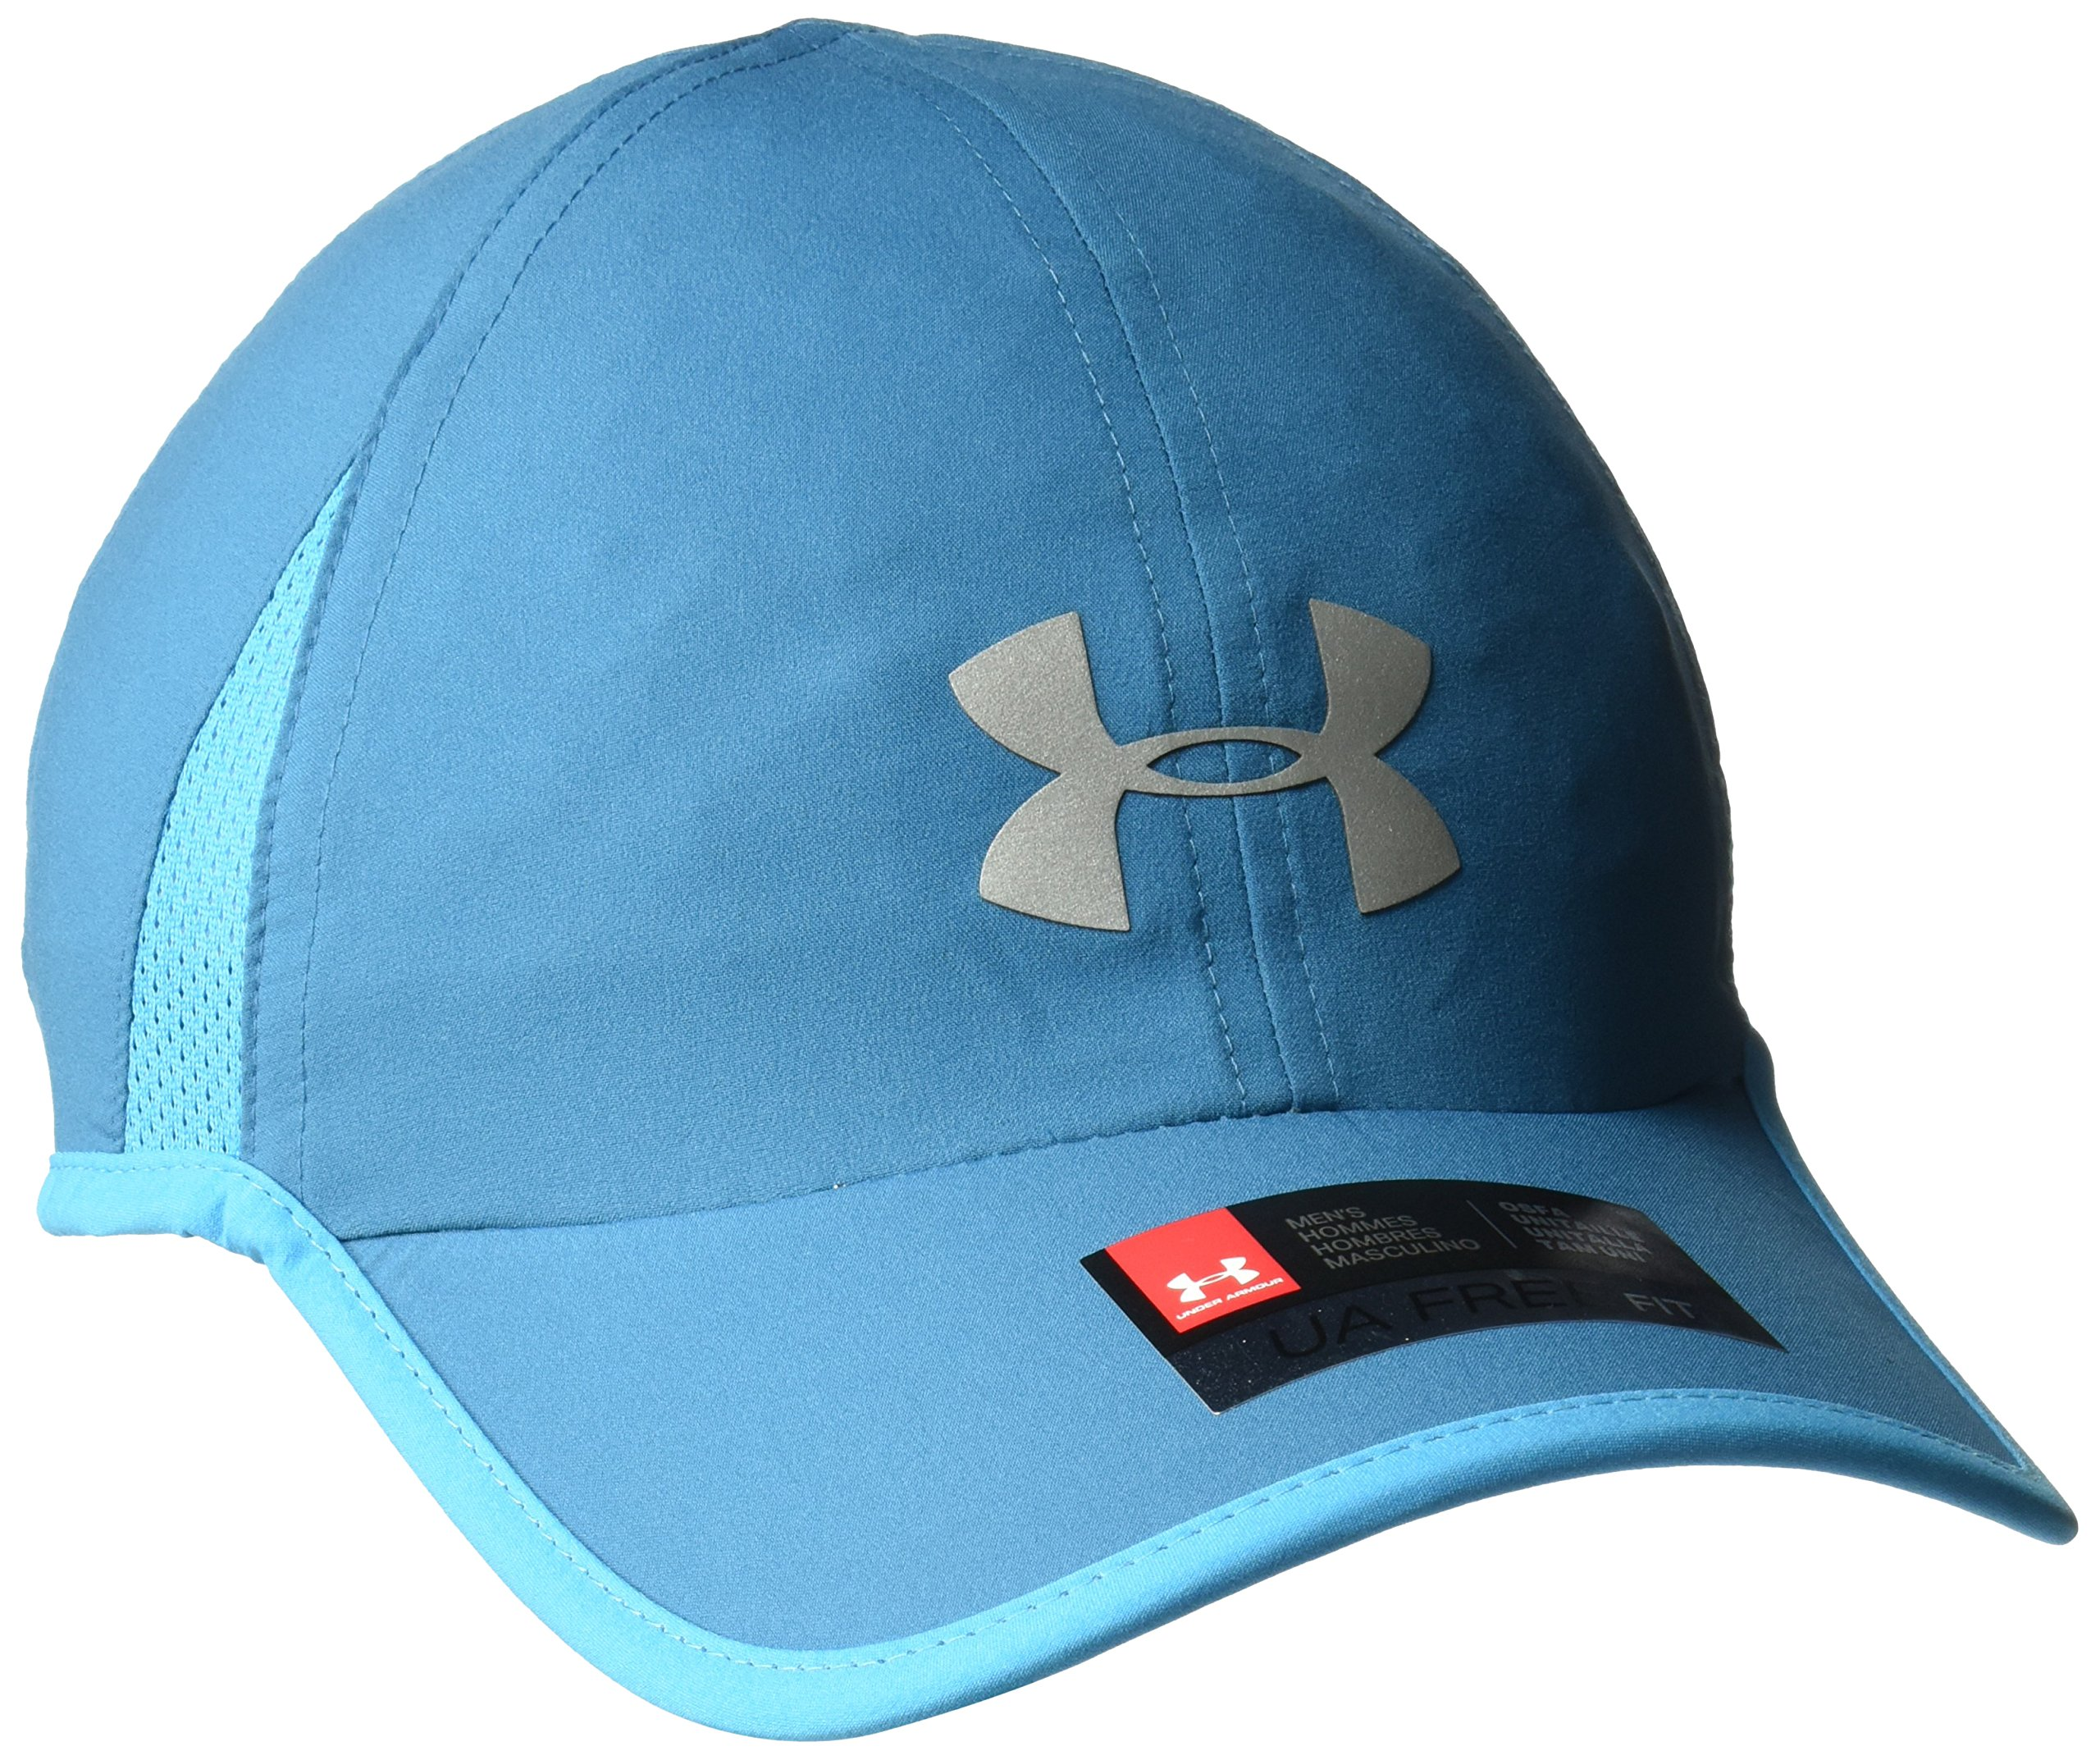 reputable site af3c5 db778 Galleon - Under Armour Men s Shadow 4.0 Run Cap, Bayou Blue (953) Silver,  One Size